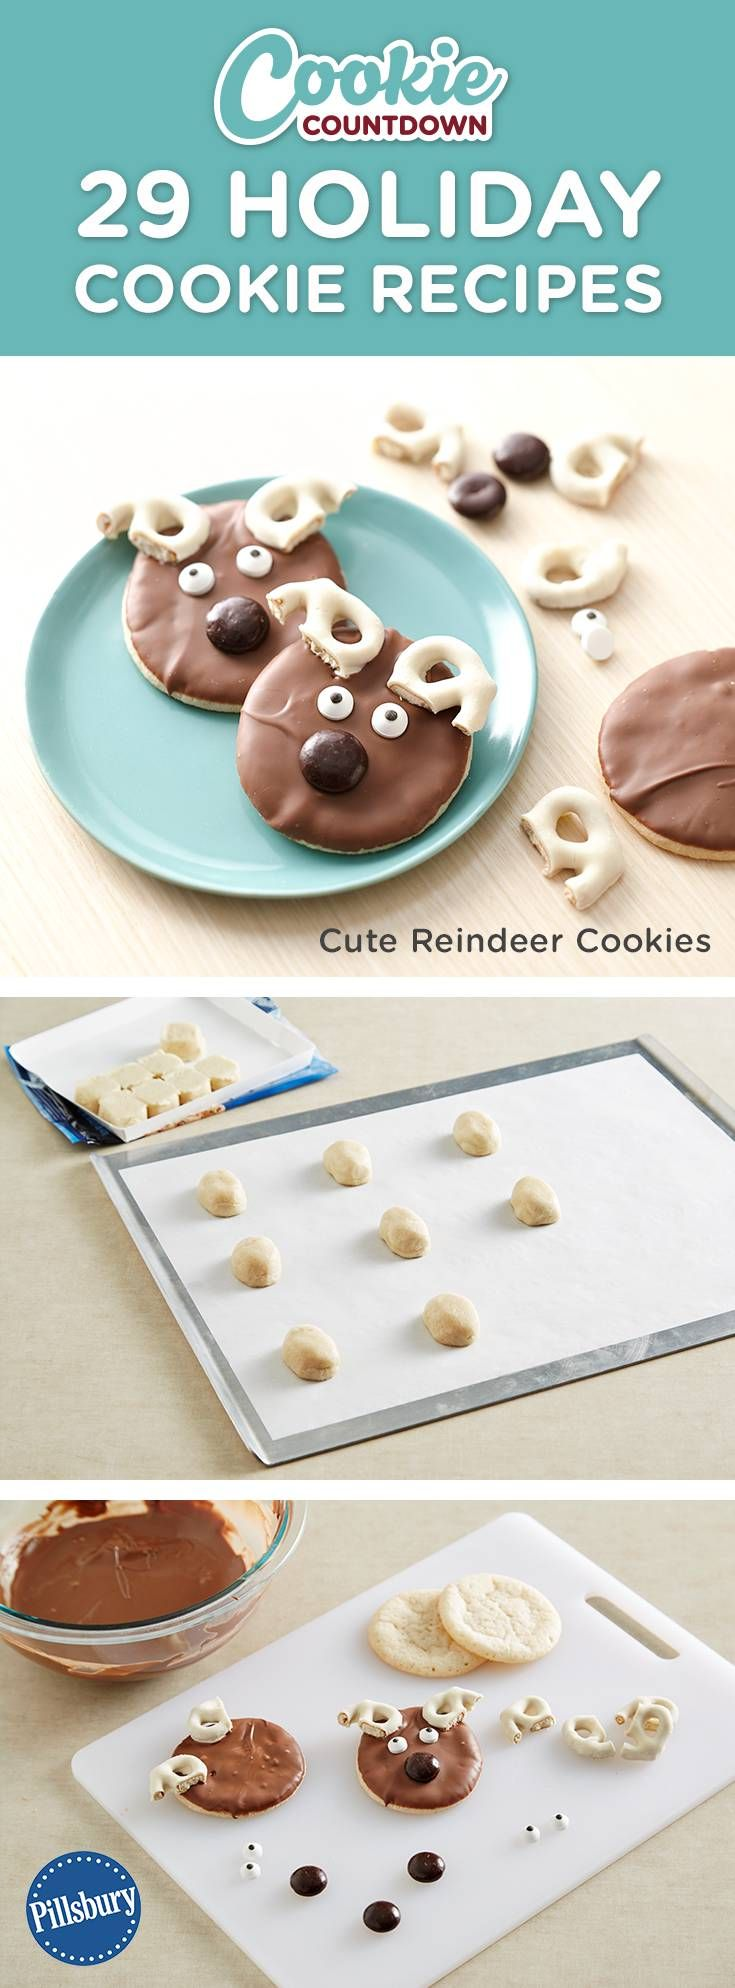 pillsbury holiday cookies baking instructions